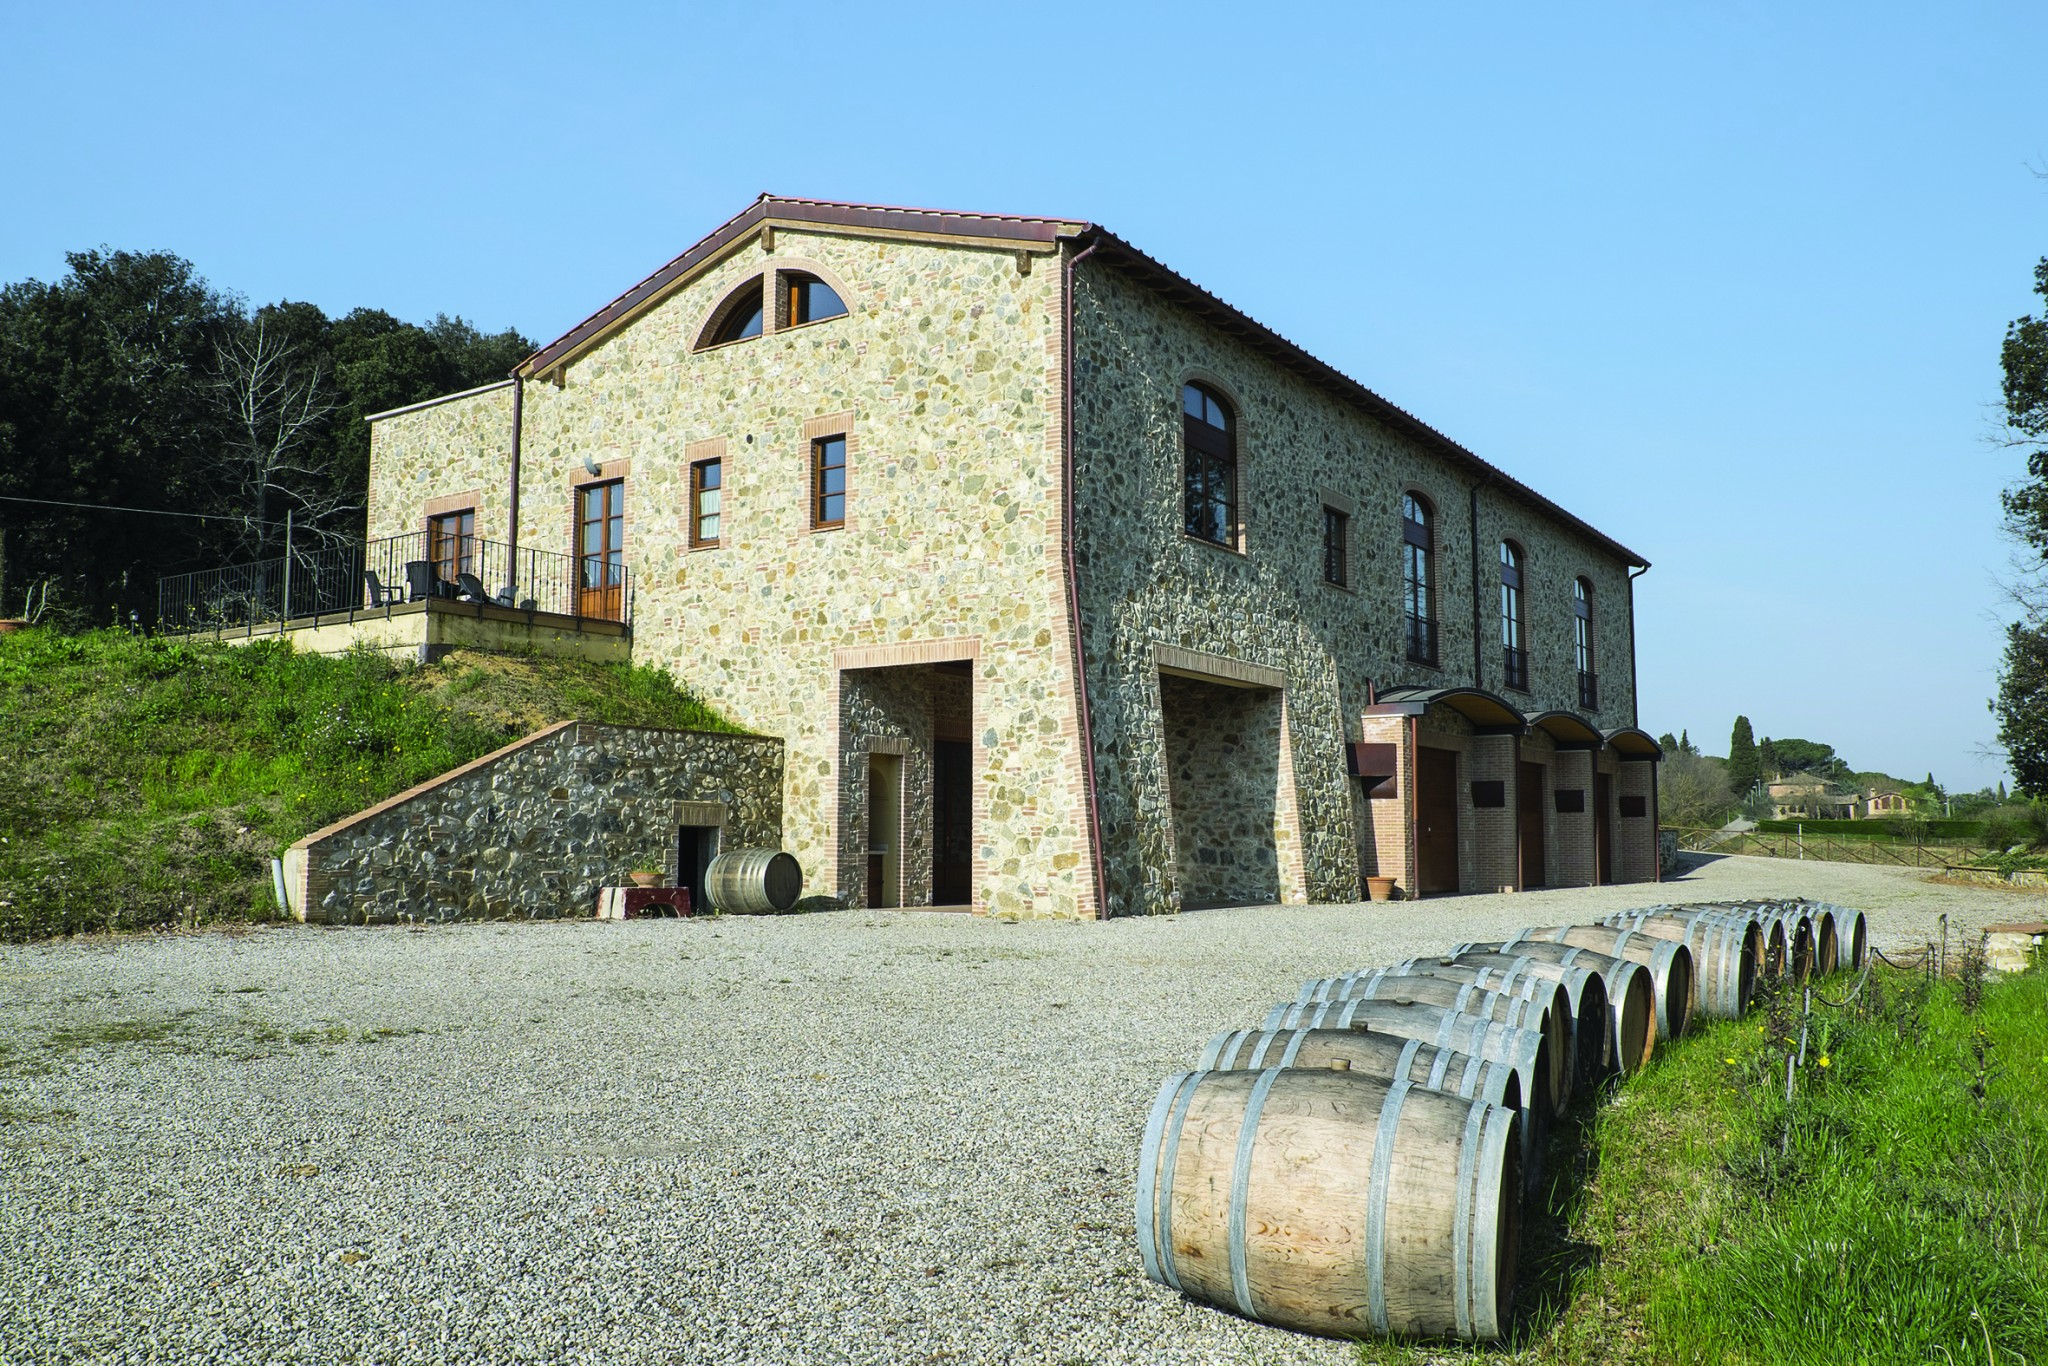 Winemaking and aging